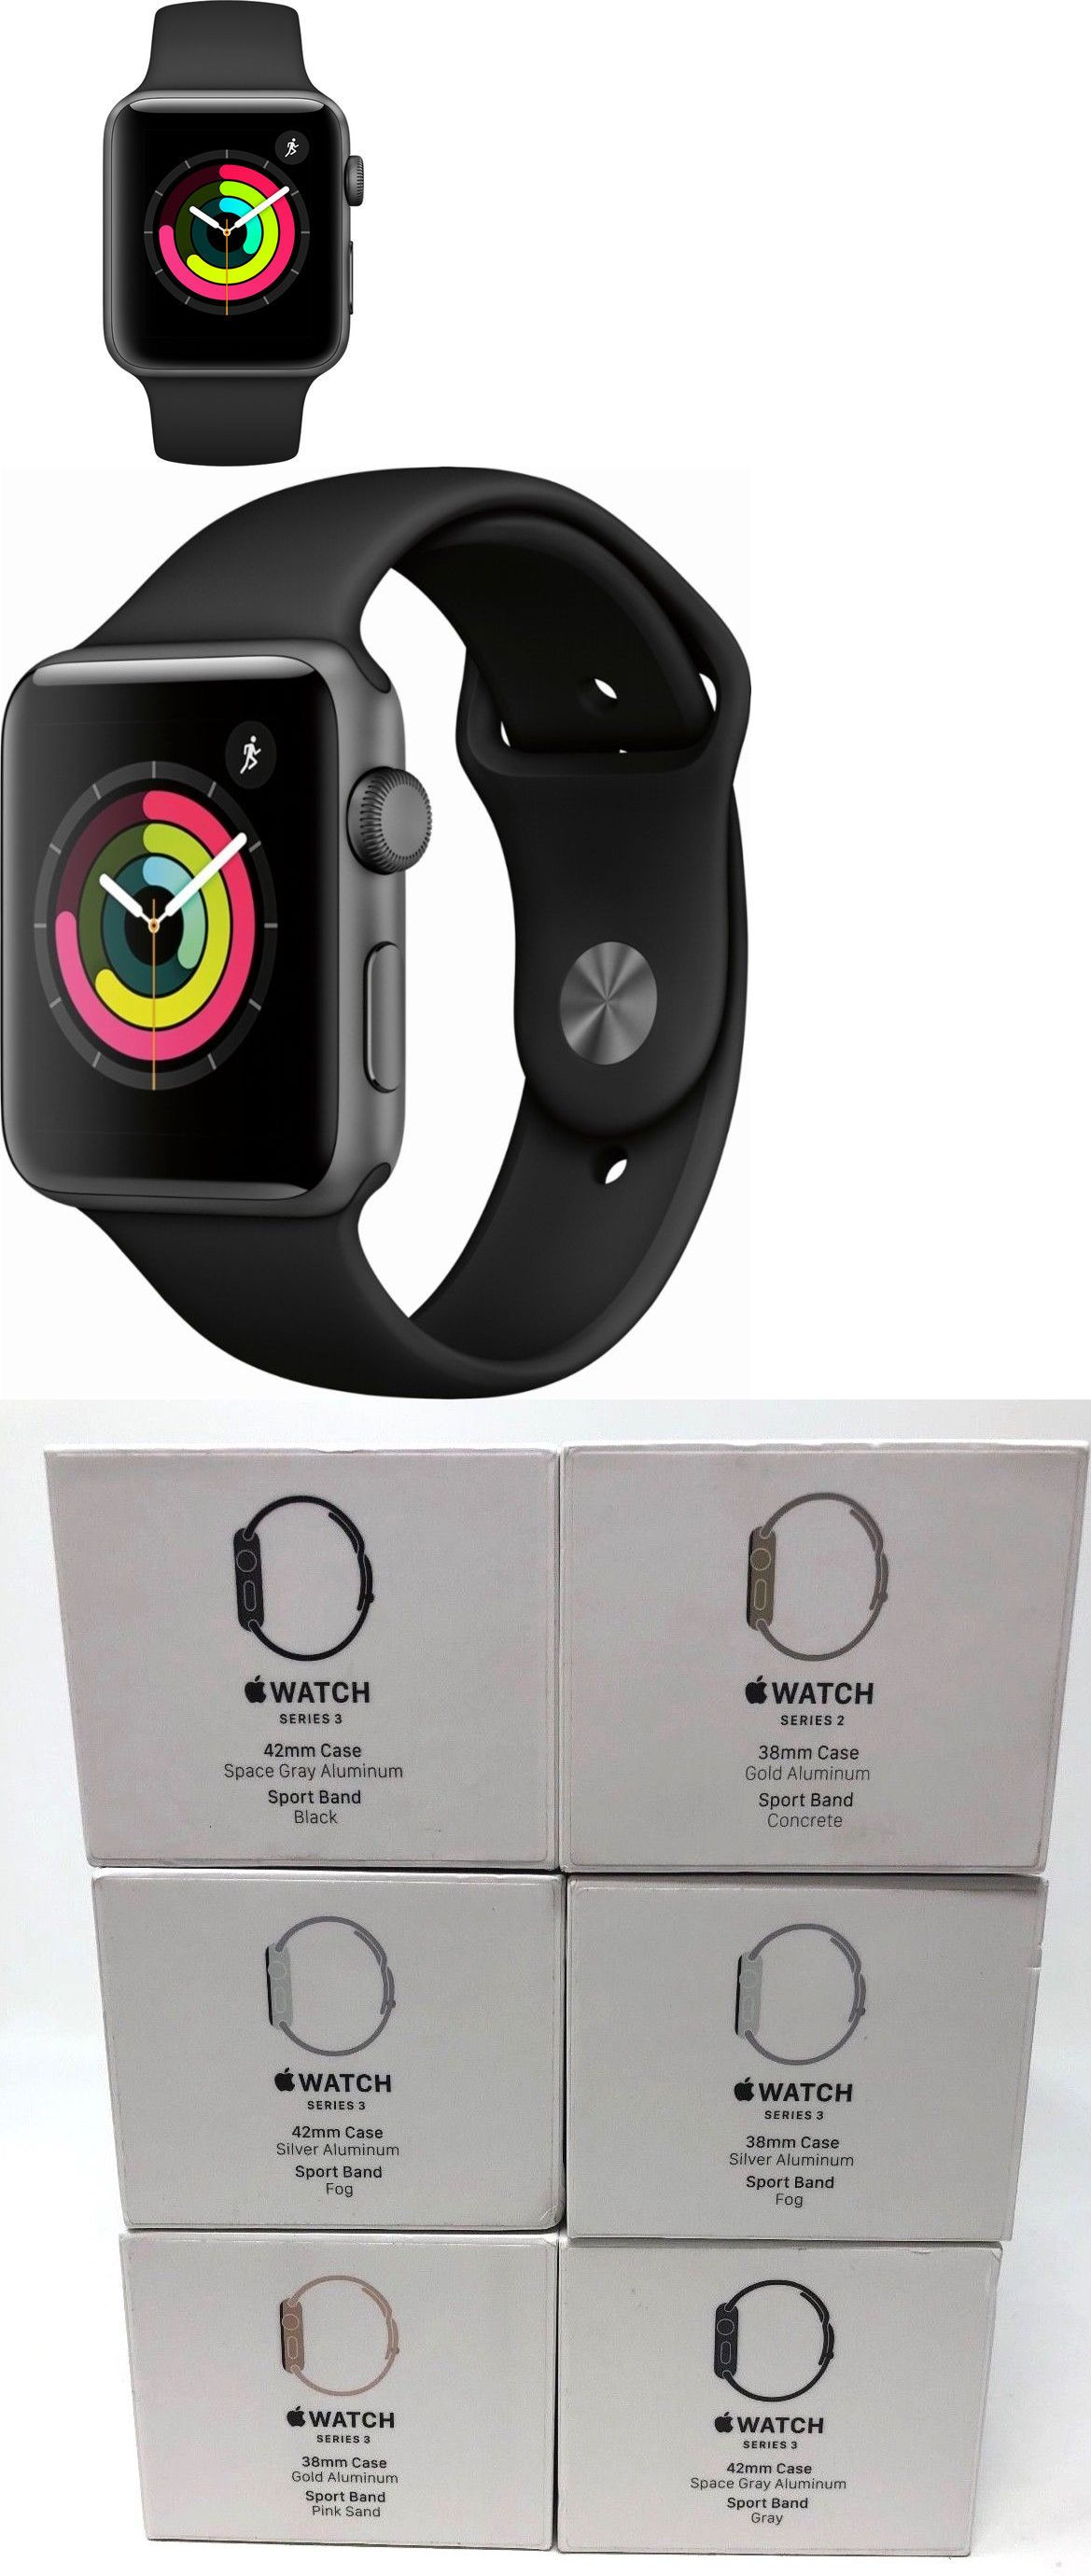 Smart Watches 178893 New Apple Watch Series 3 42mm Space Gray